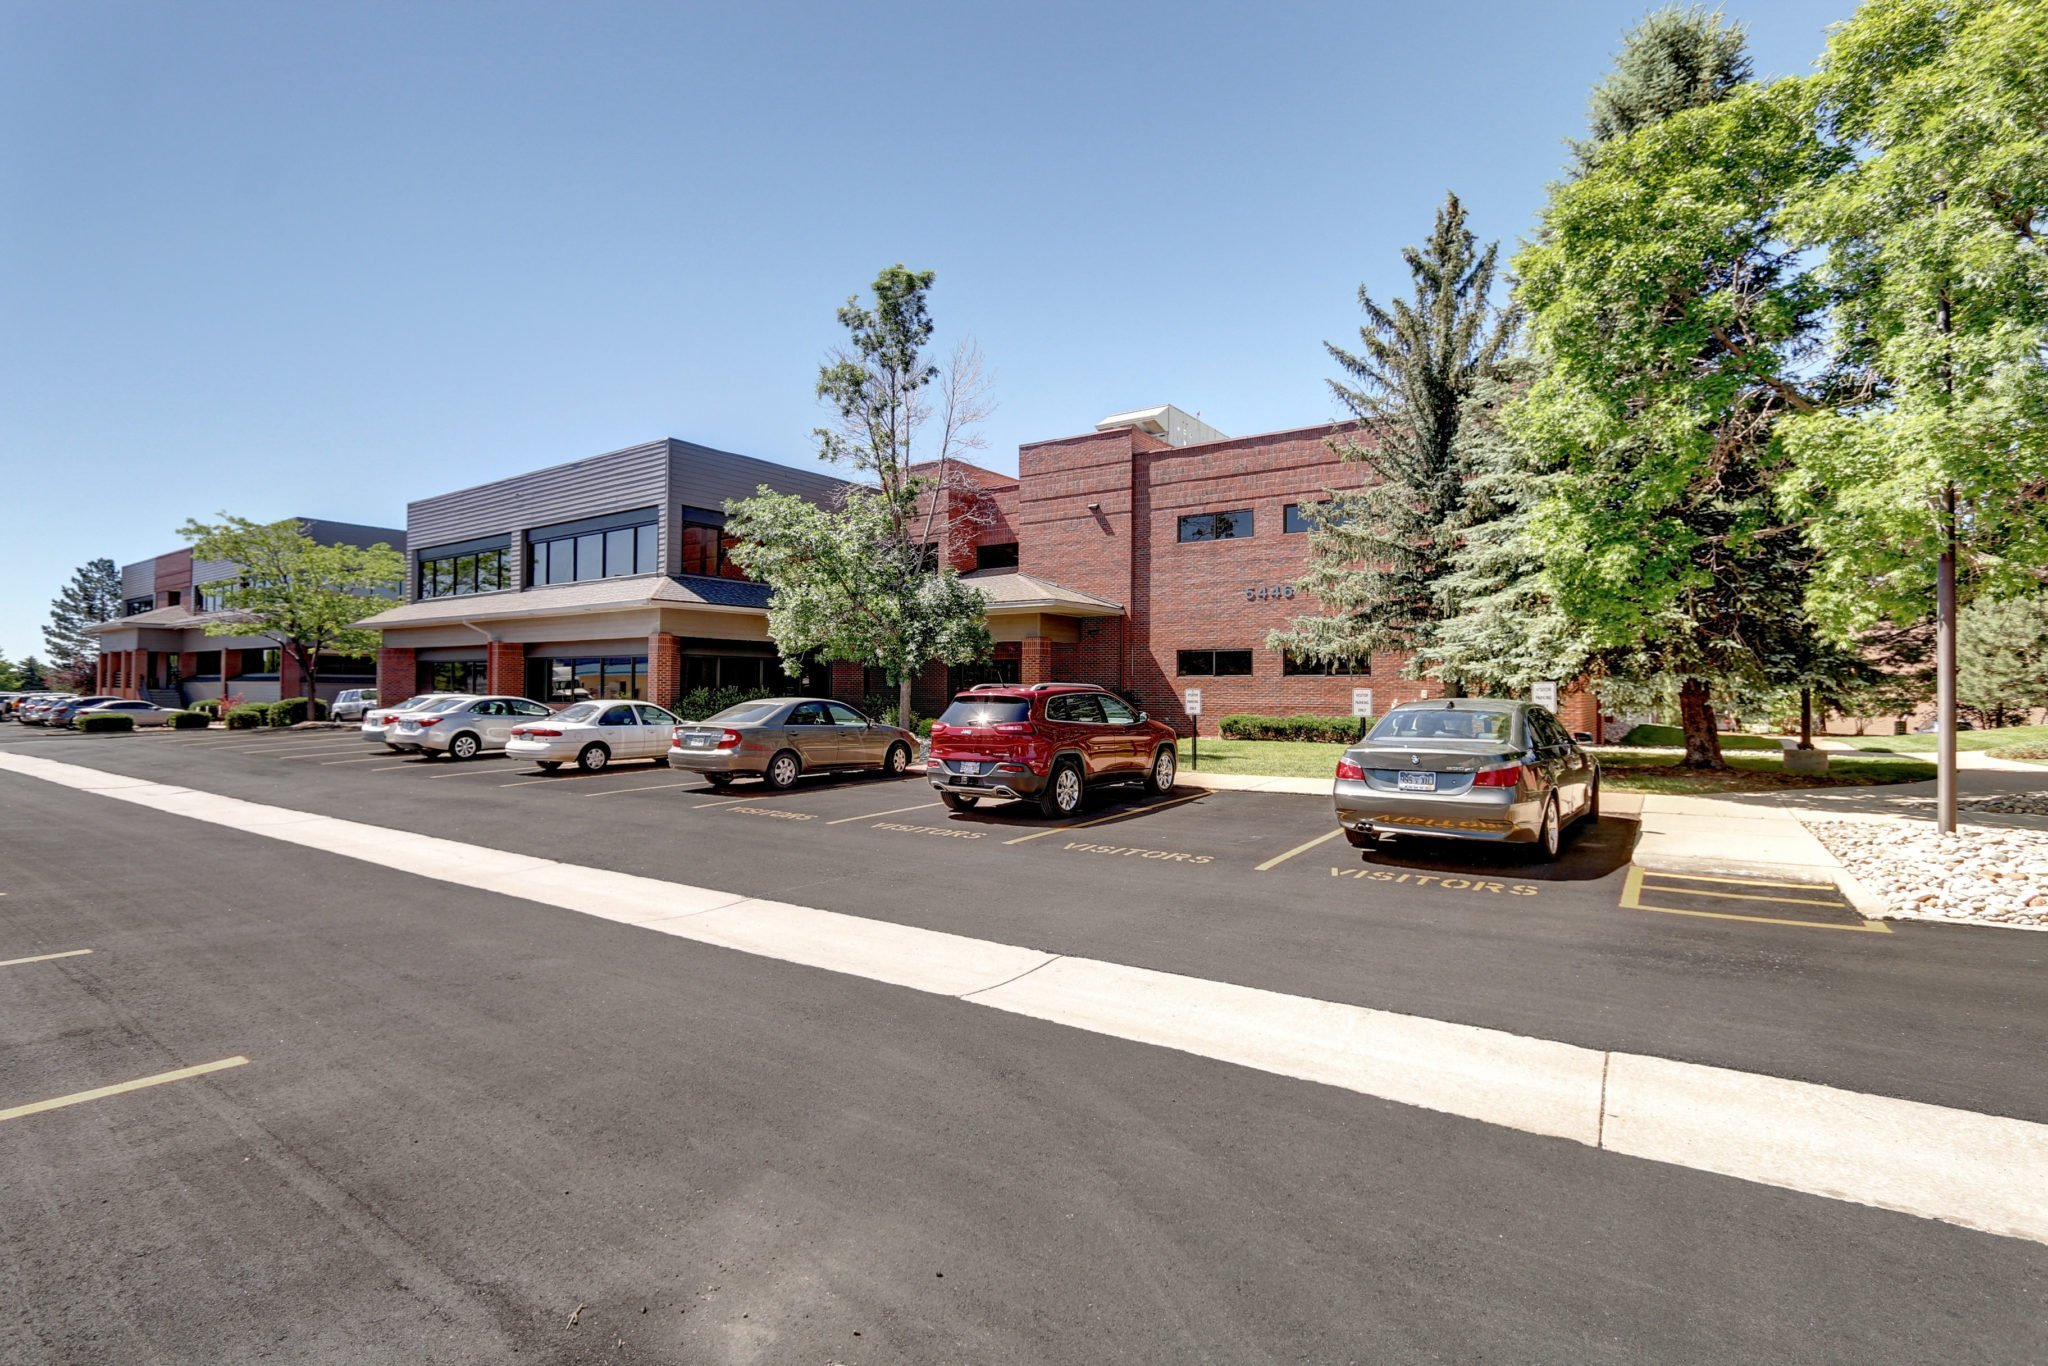 NavPoint Real Estate Group sells Portfolio of 4 Medical Office Buildings in Colorado Springs totaling nearly 68,000 SF for $9,365,000